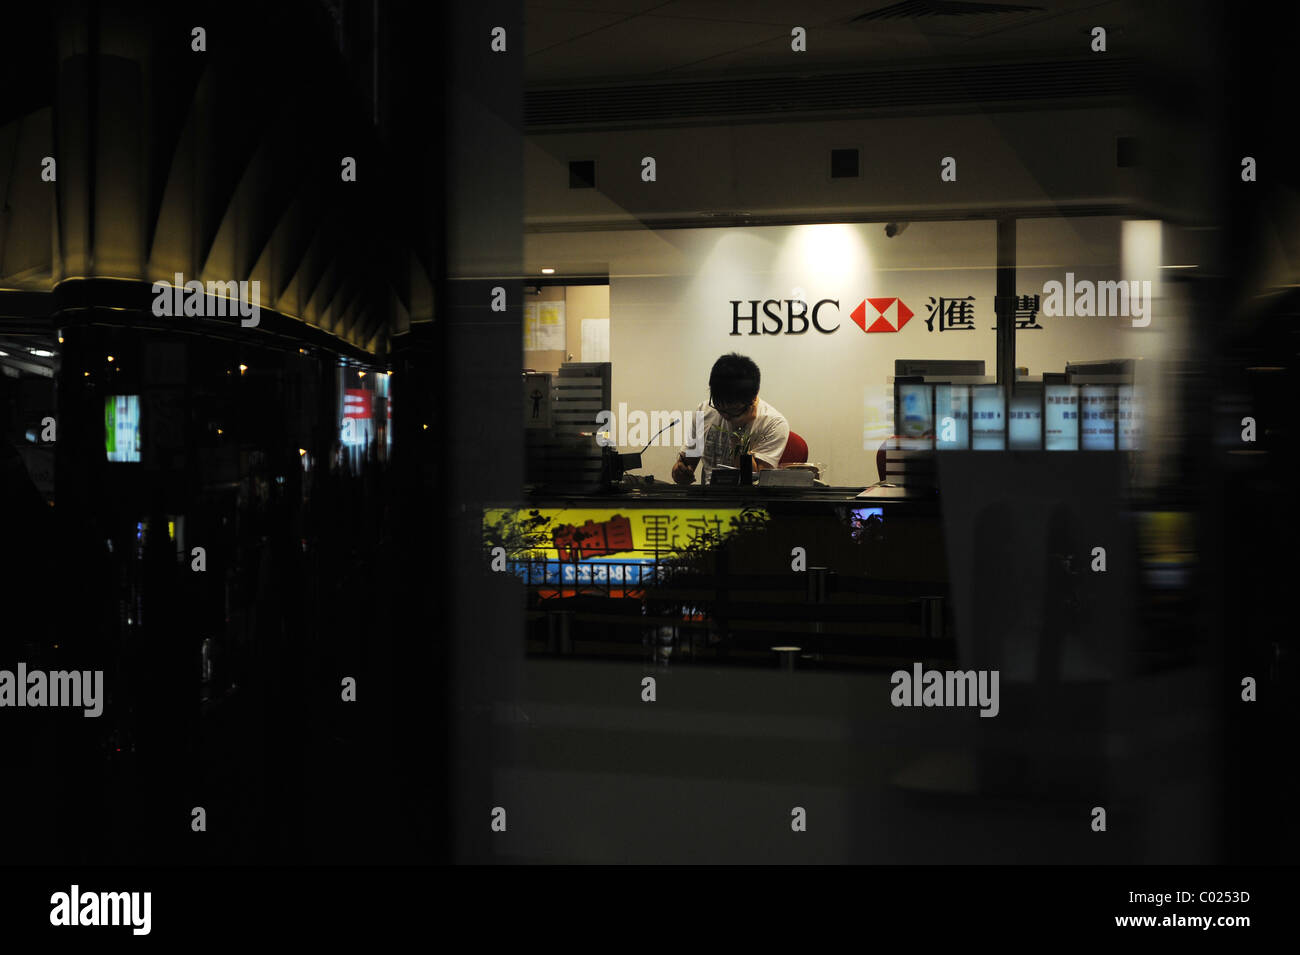 Bank Clerk inside a HSBC Branch, Hong KongHong Ko Stock Photo